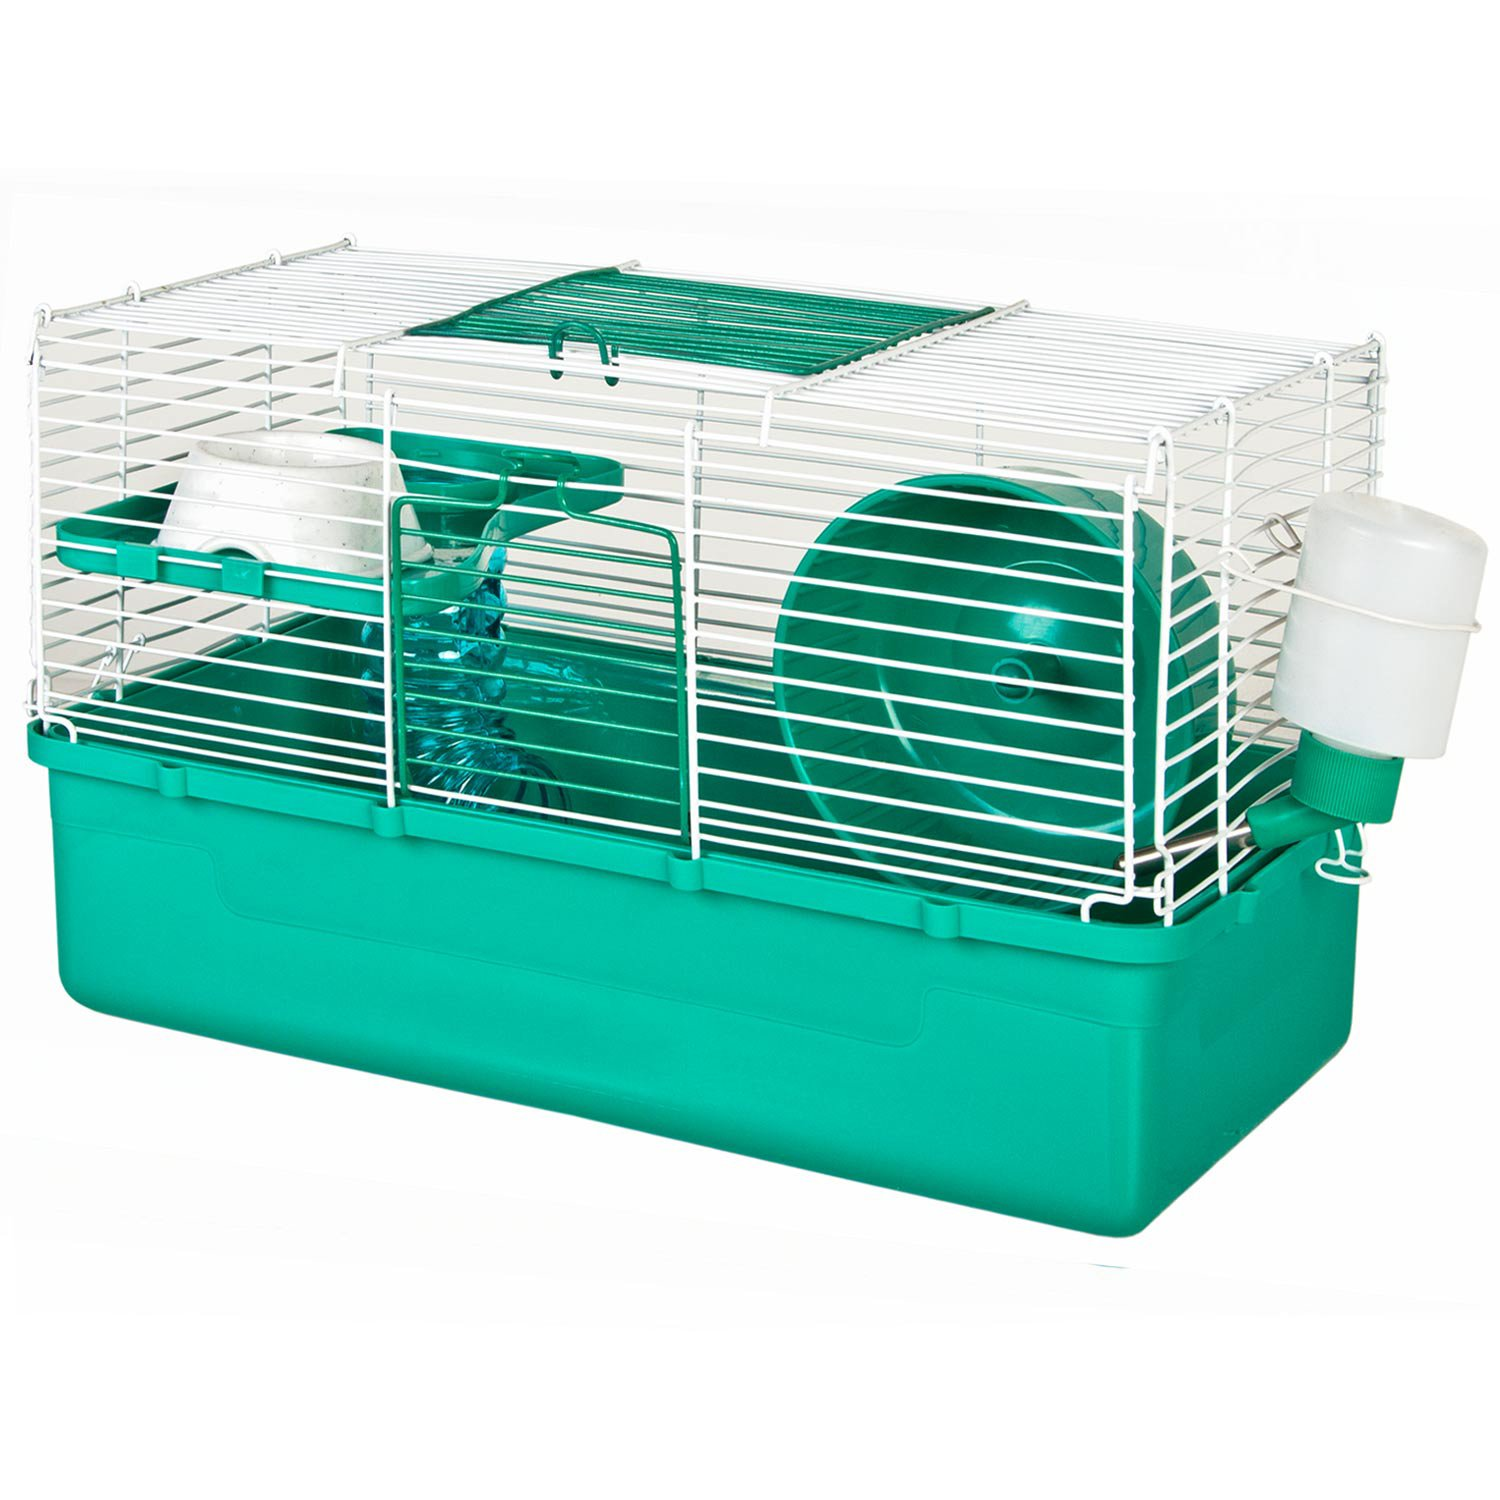 ware home sweet home teal 1 story hamster cage petco. Black Bedroom Furniture Sets. Home Design Ideas